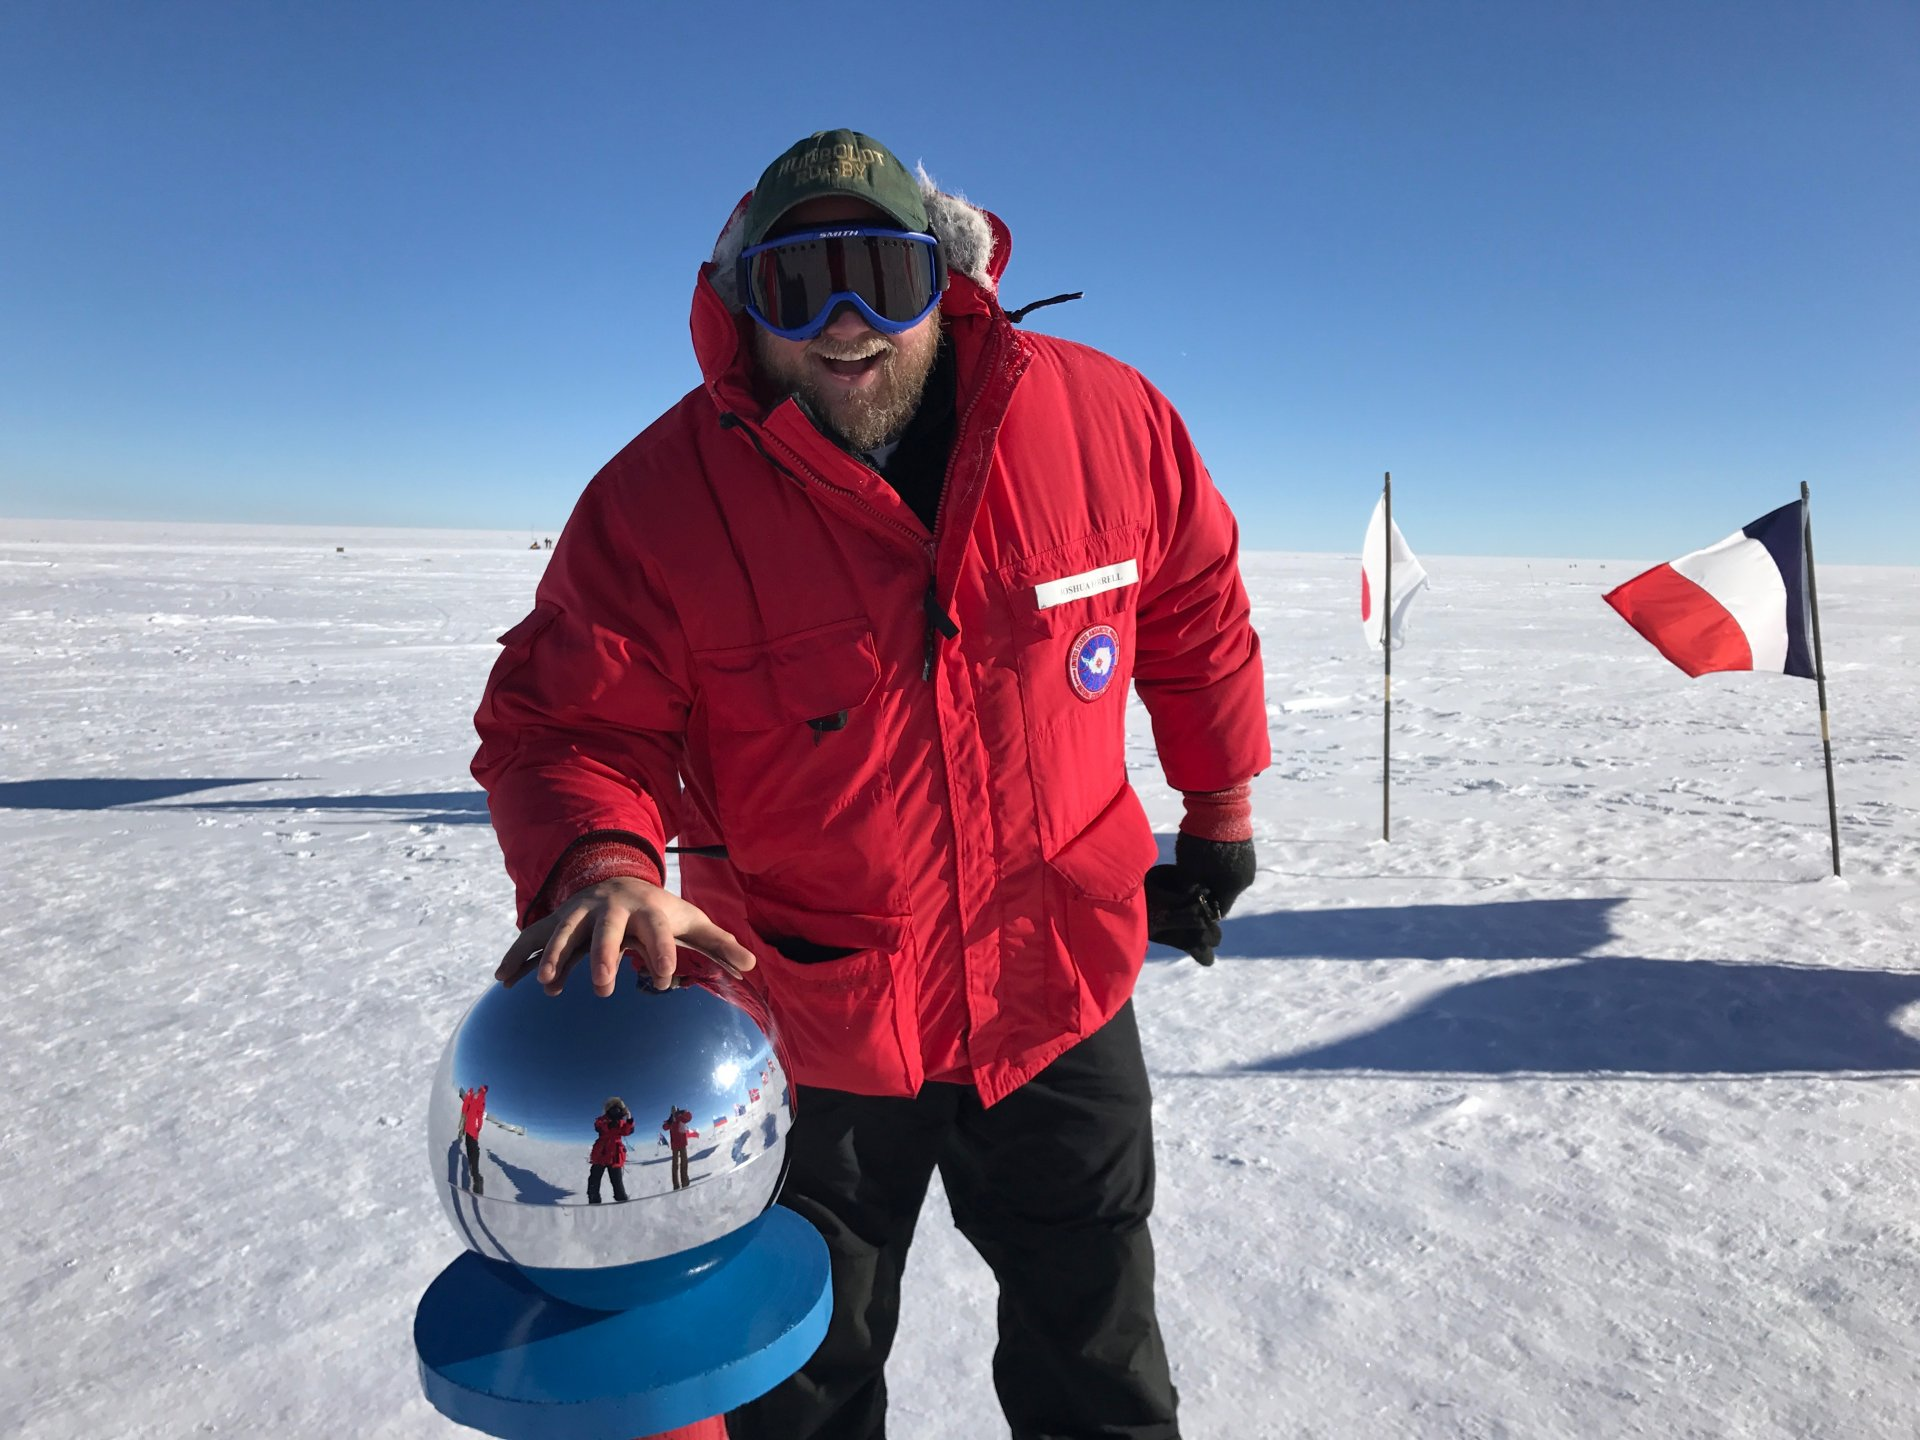 Josh Ferrell at the South Pole shooting an episode of